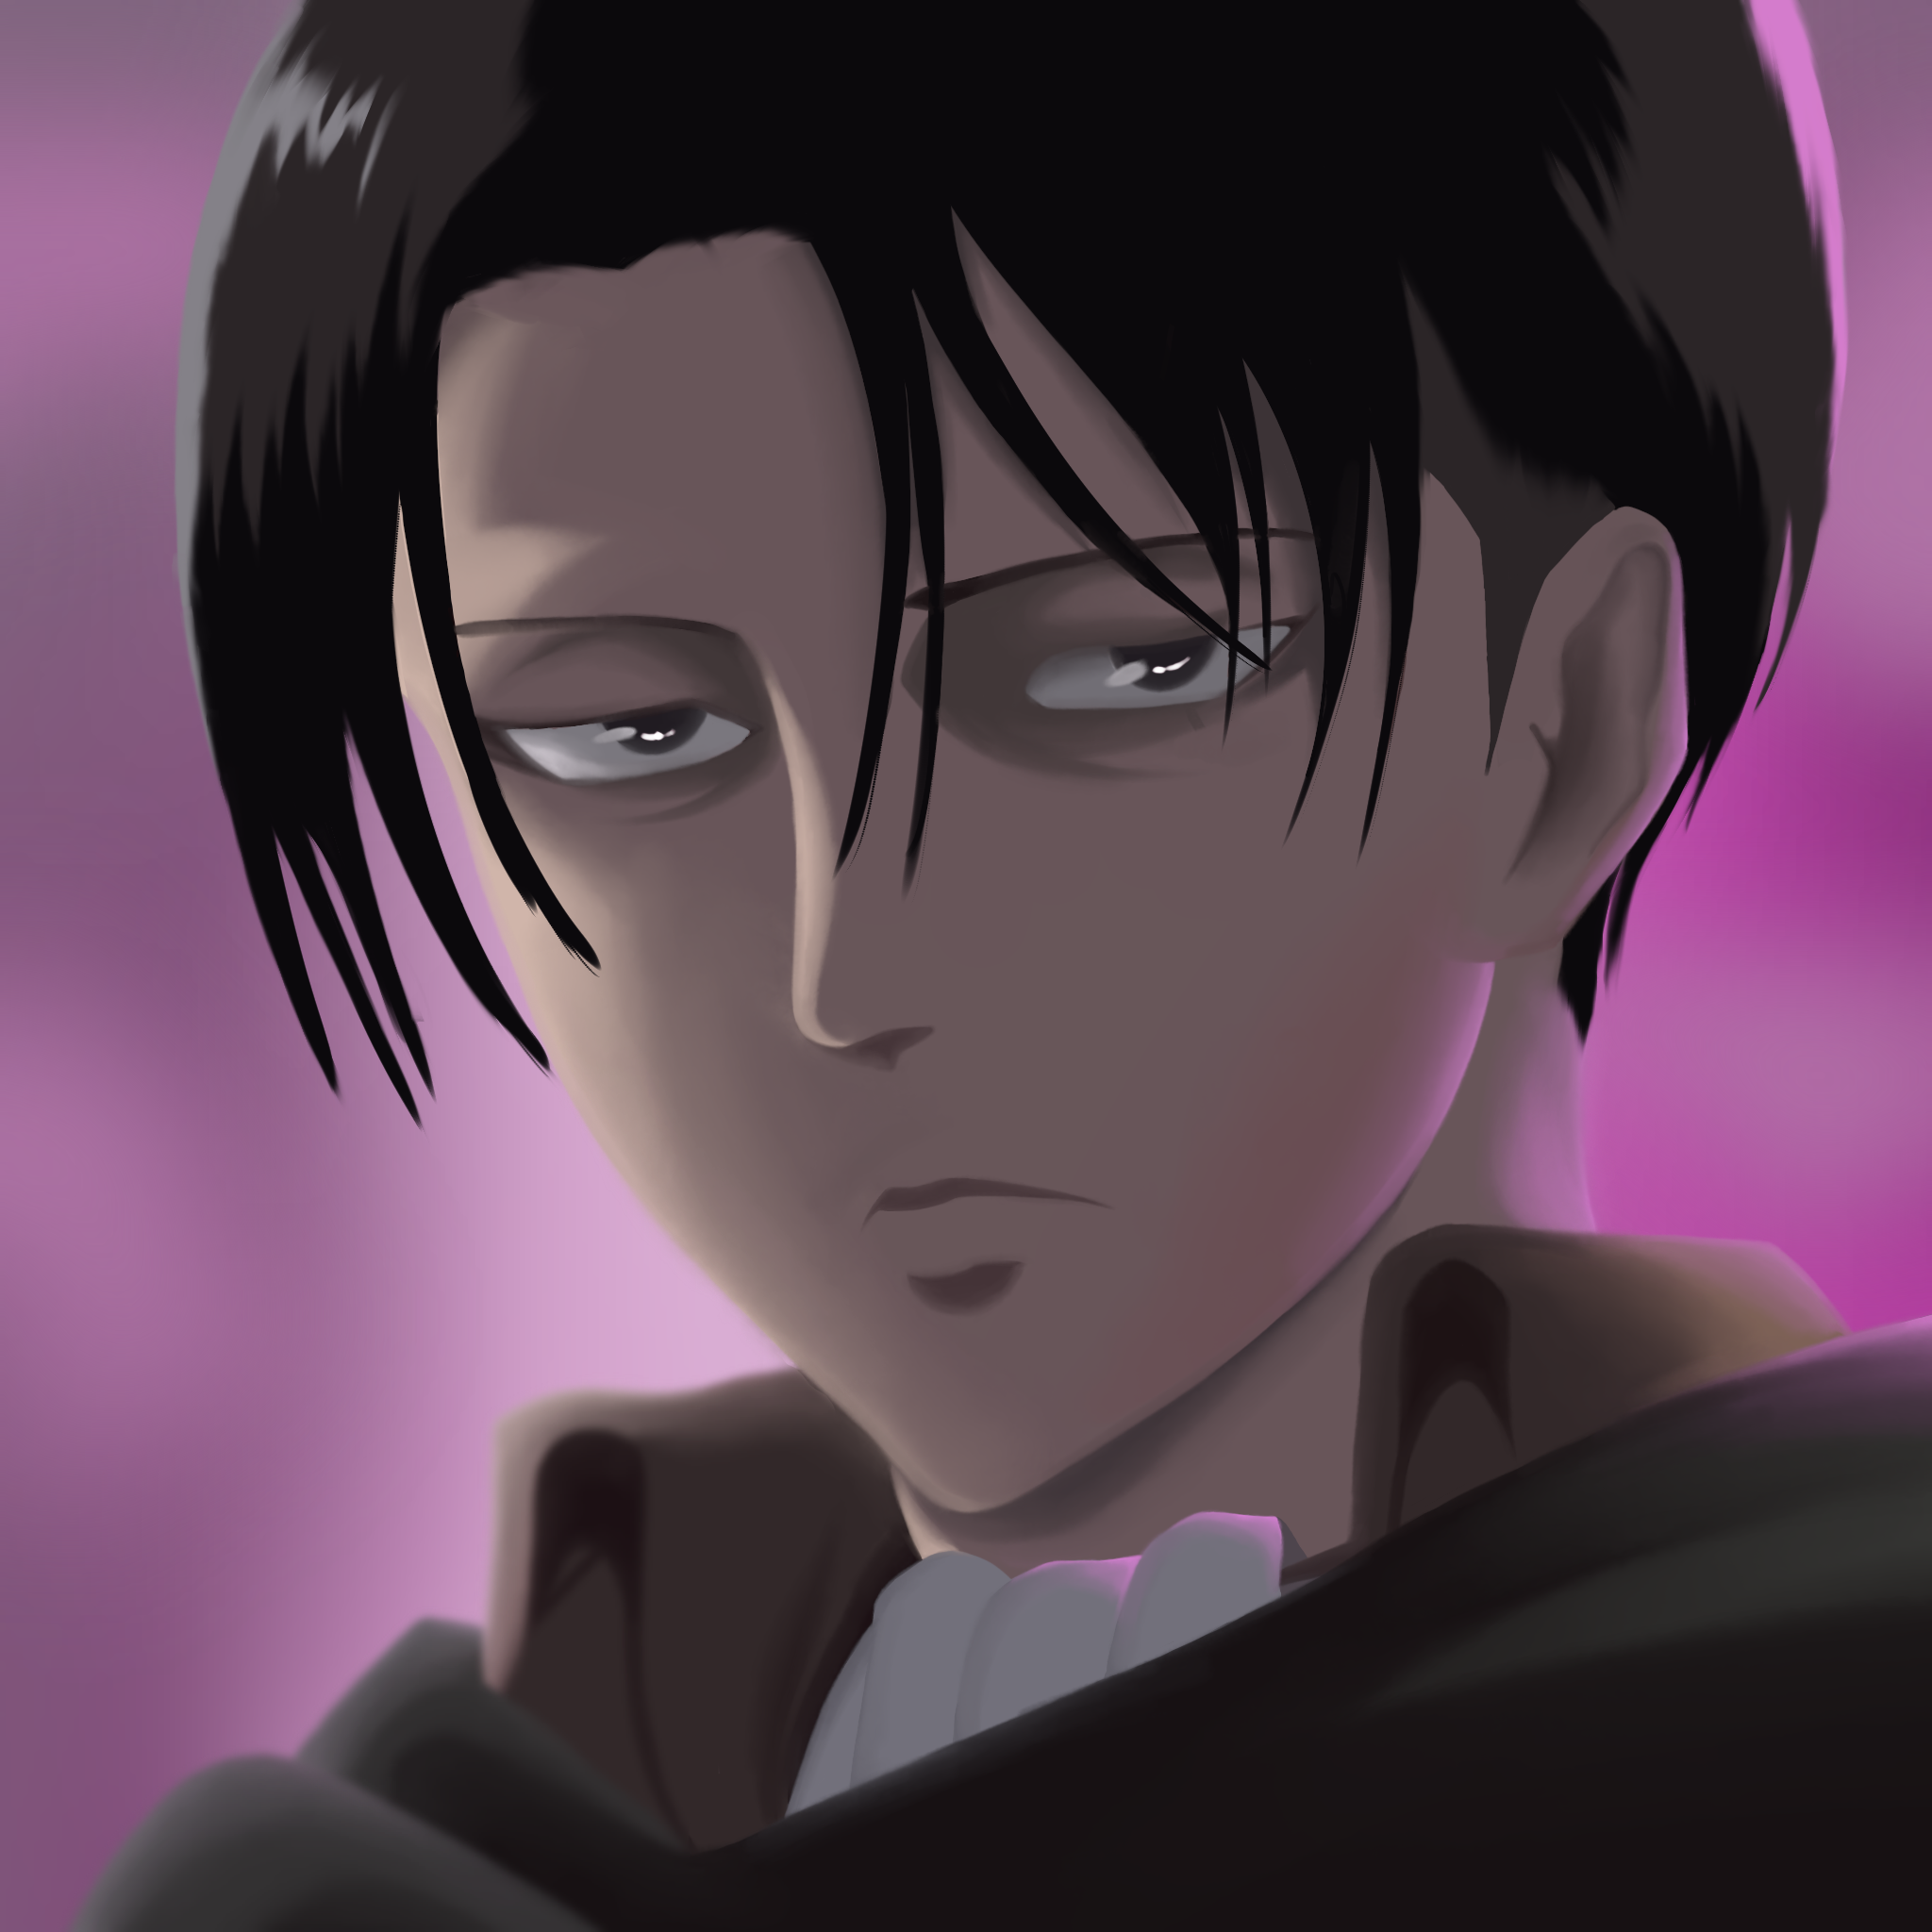 A painting of Levi from the famous anime Attack On Titans.